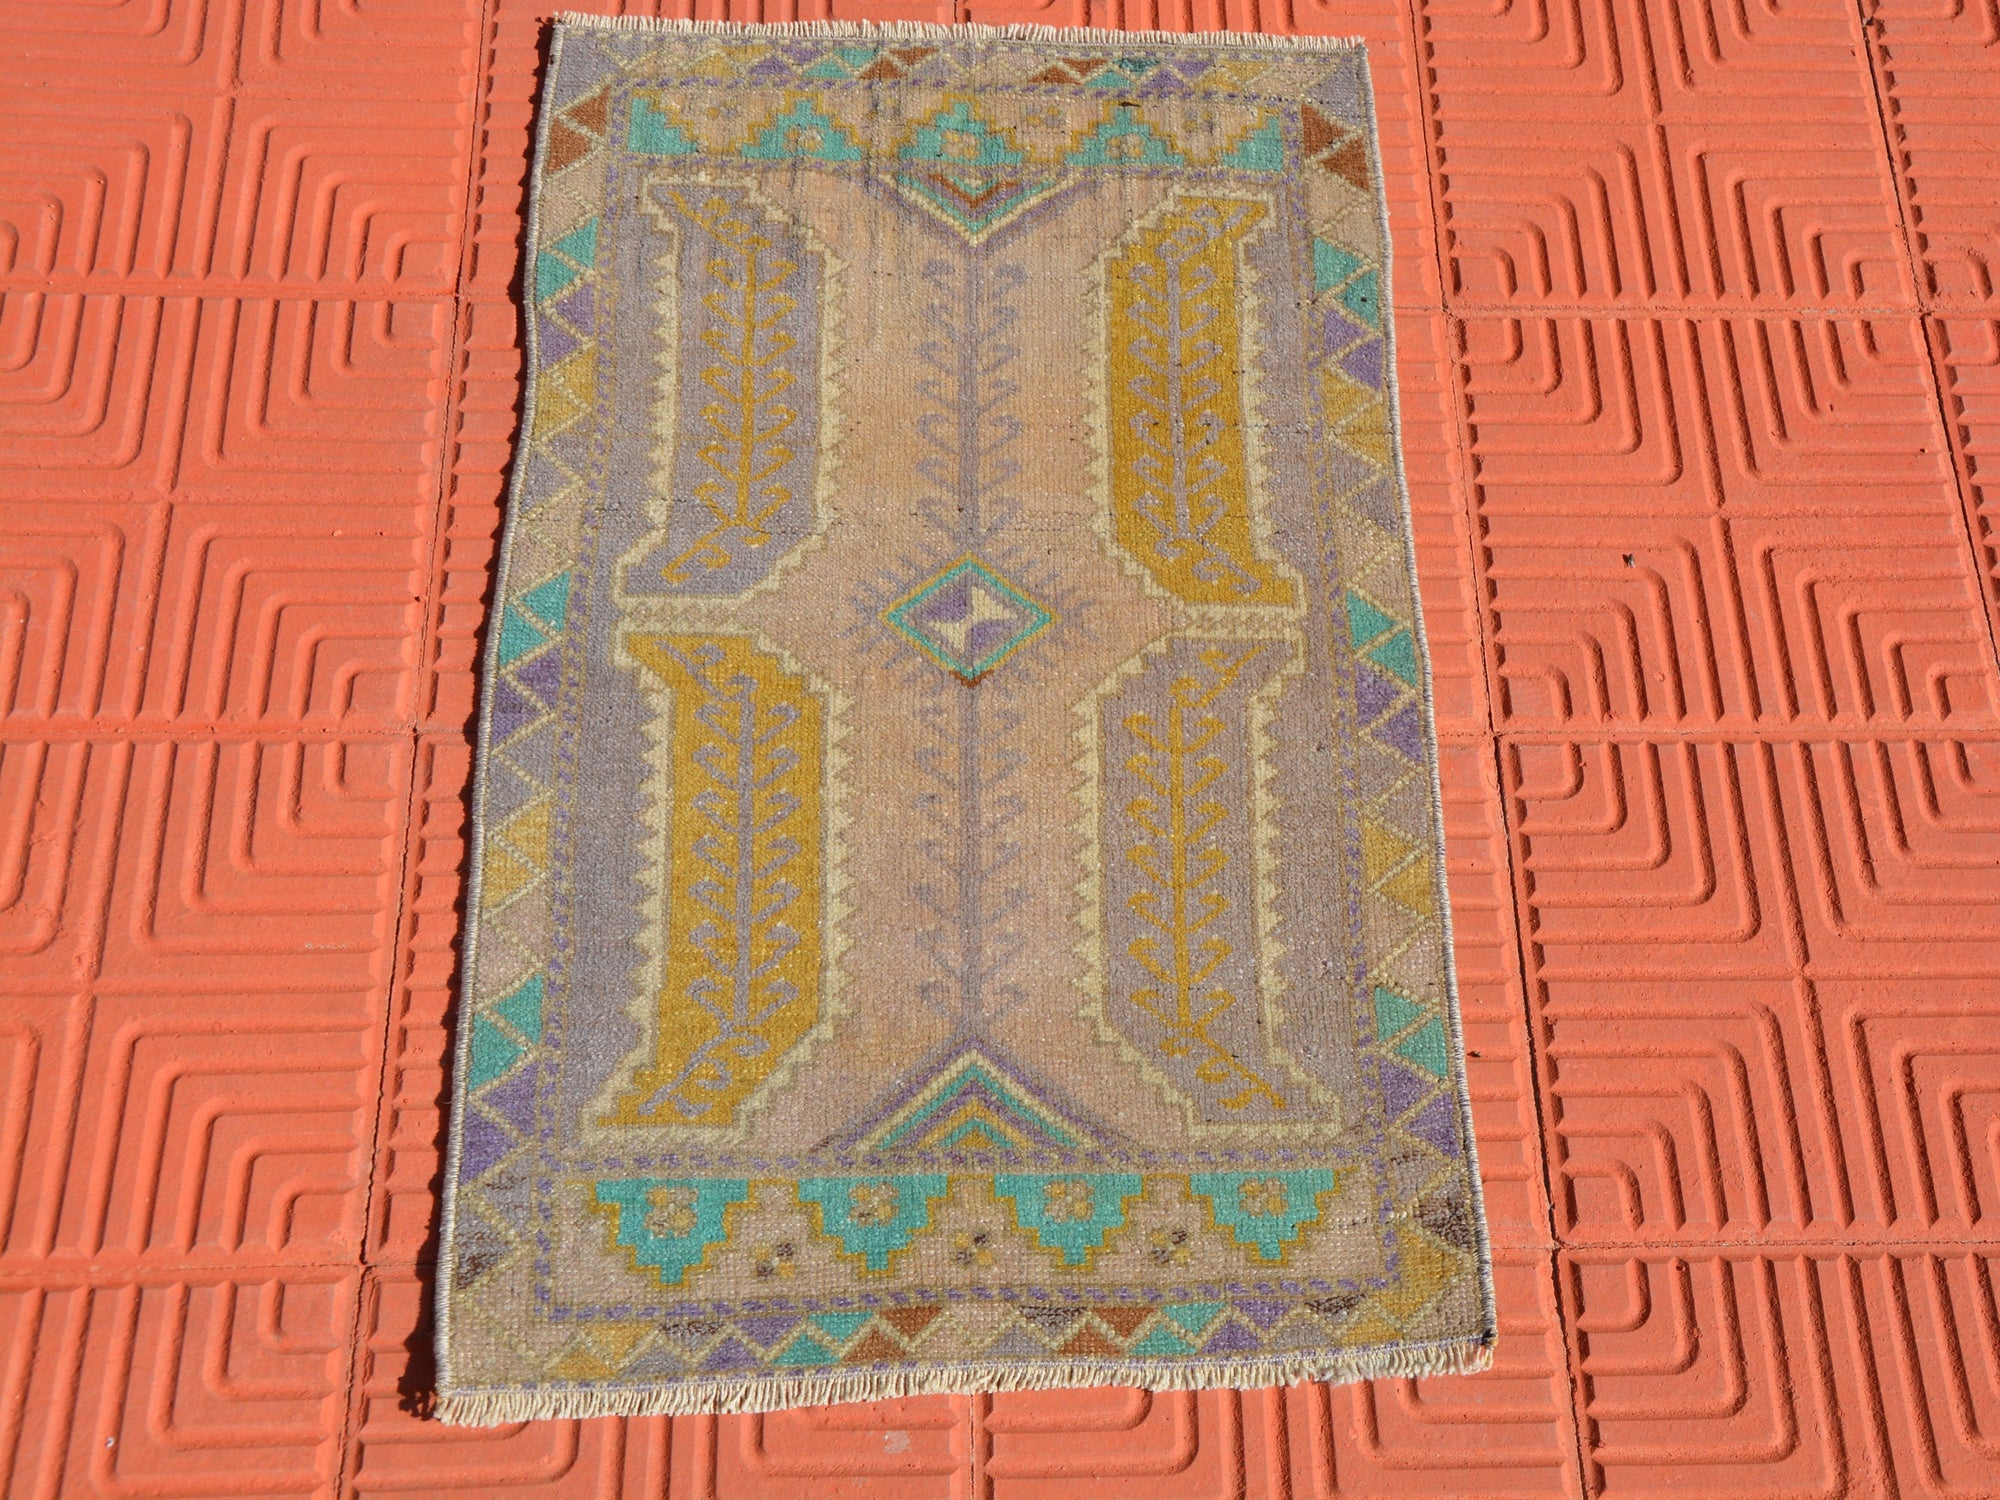 Small Kilim Rug, Vintage Rugs, Bedside Rug, Entrance Rug, Office Rug, Front door Turkish Rug, Ethnic Rug,             1.7 x 2.8 Feet AG1604